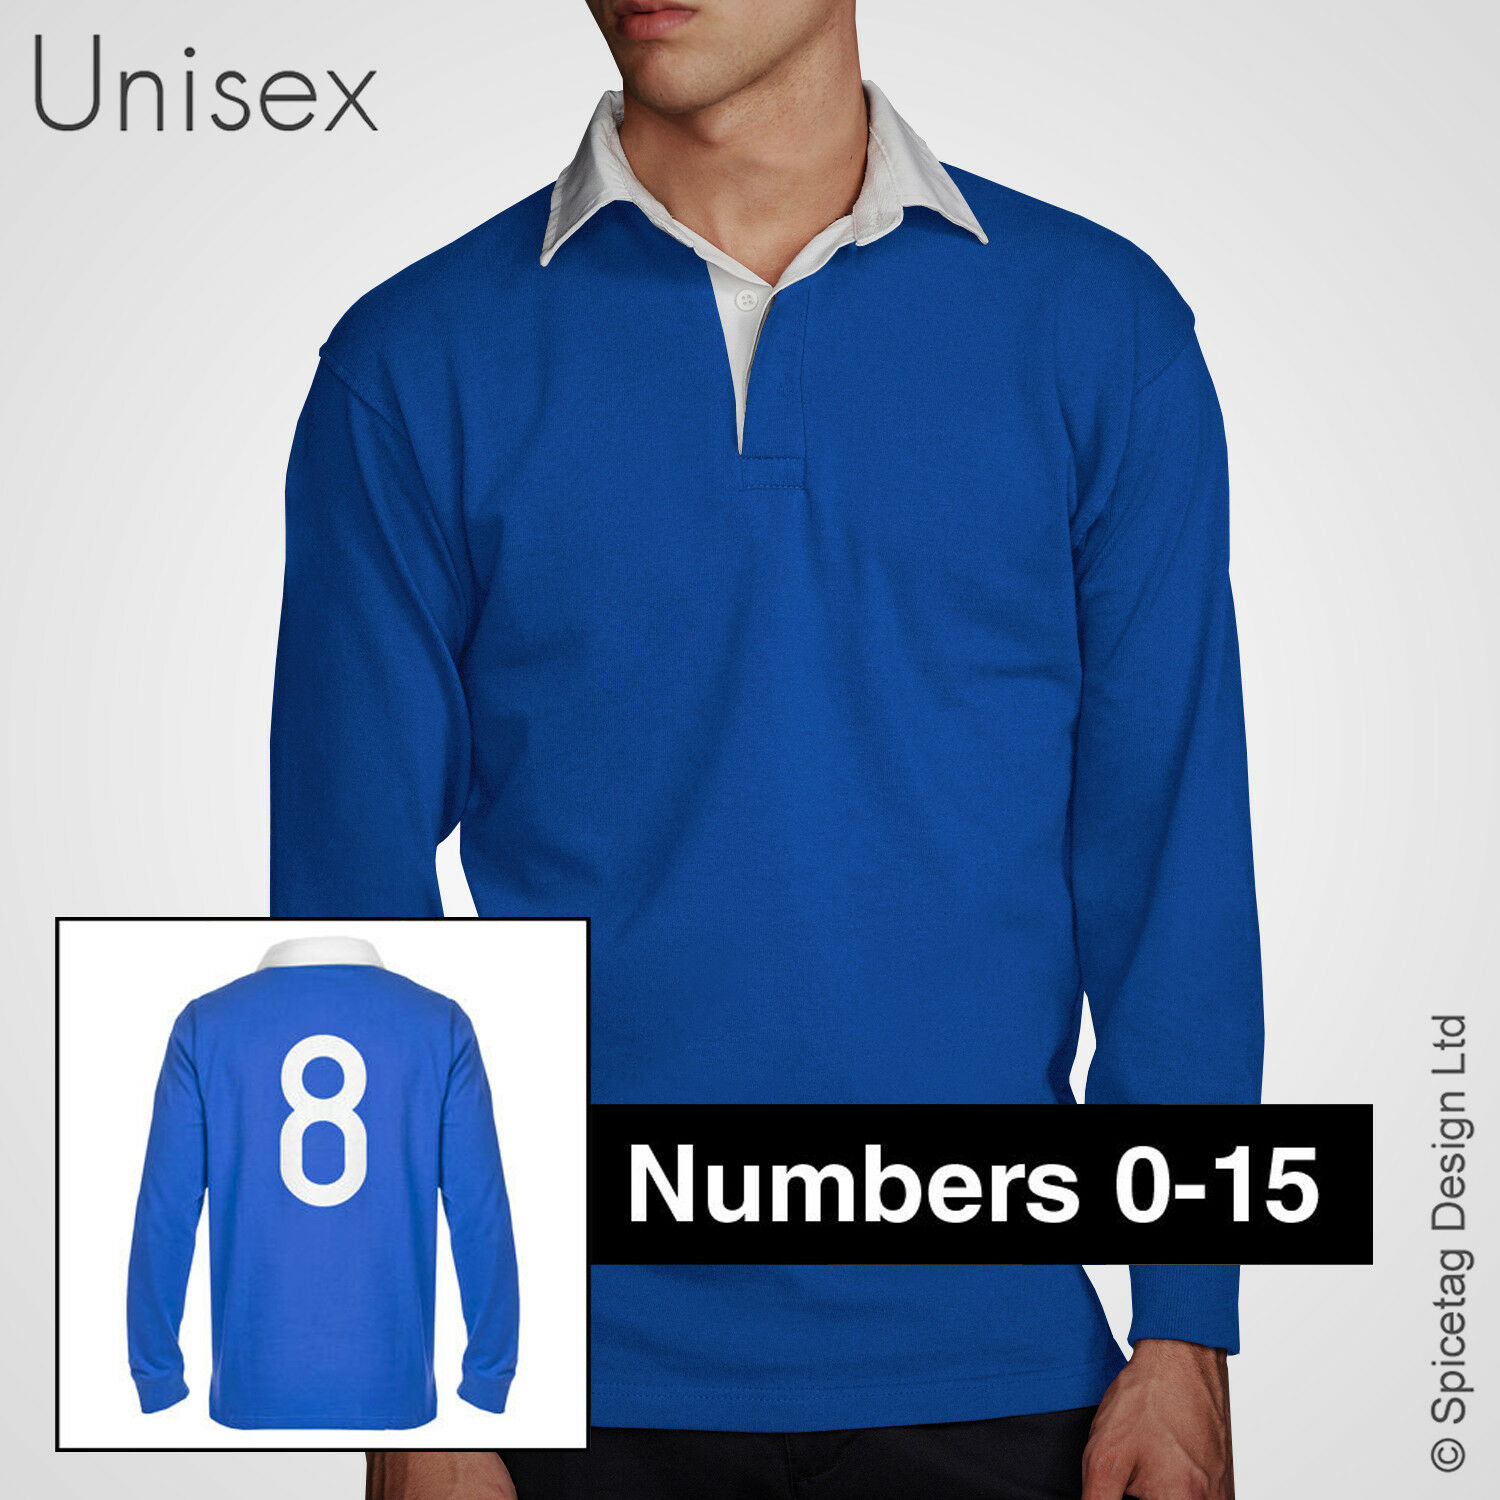 Retro 70s France Rugby Jersey French bluee Shirt Numbers Vintage Style Sweater